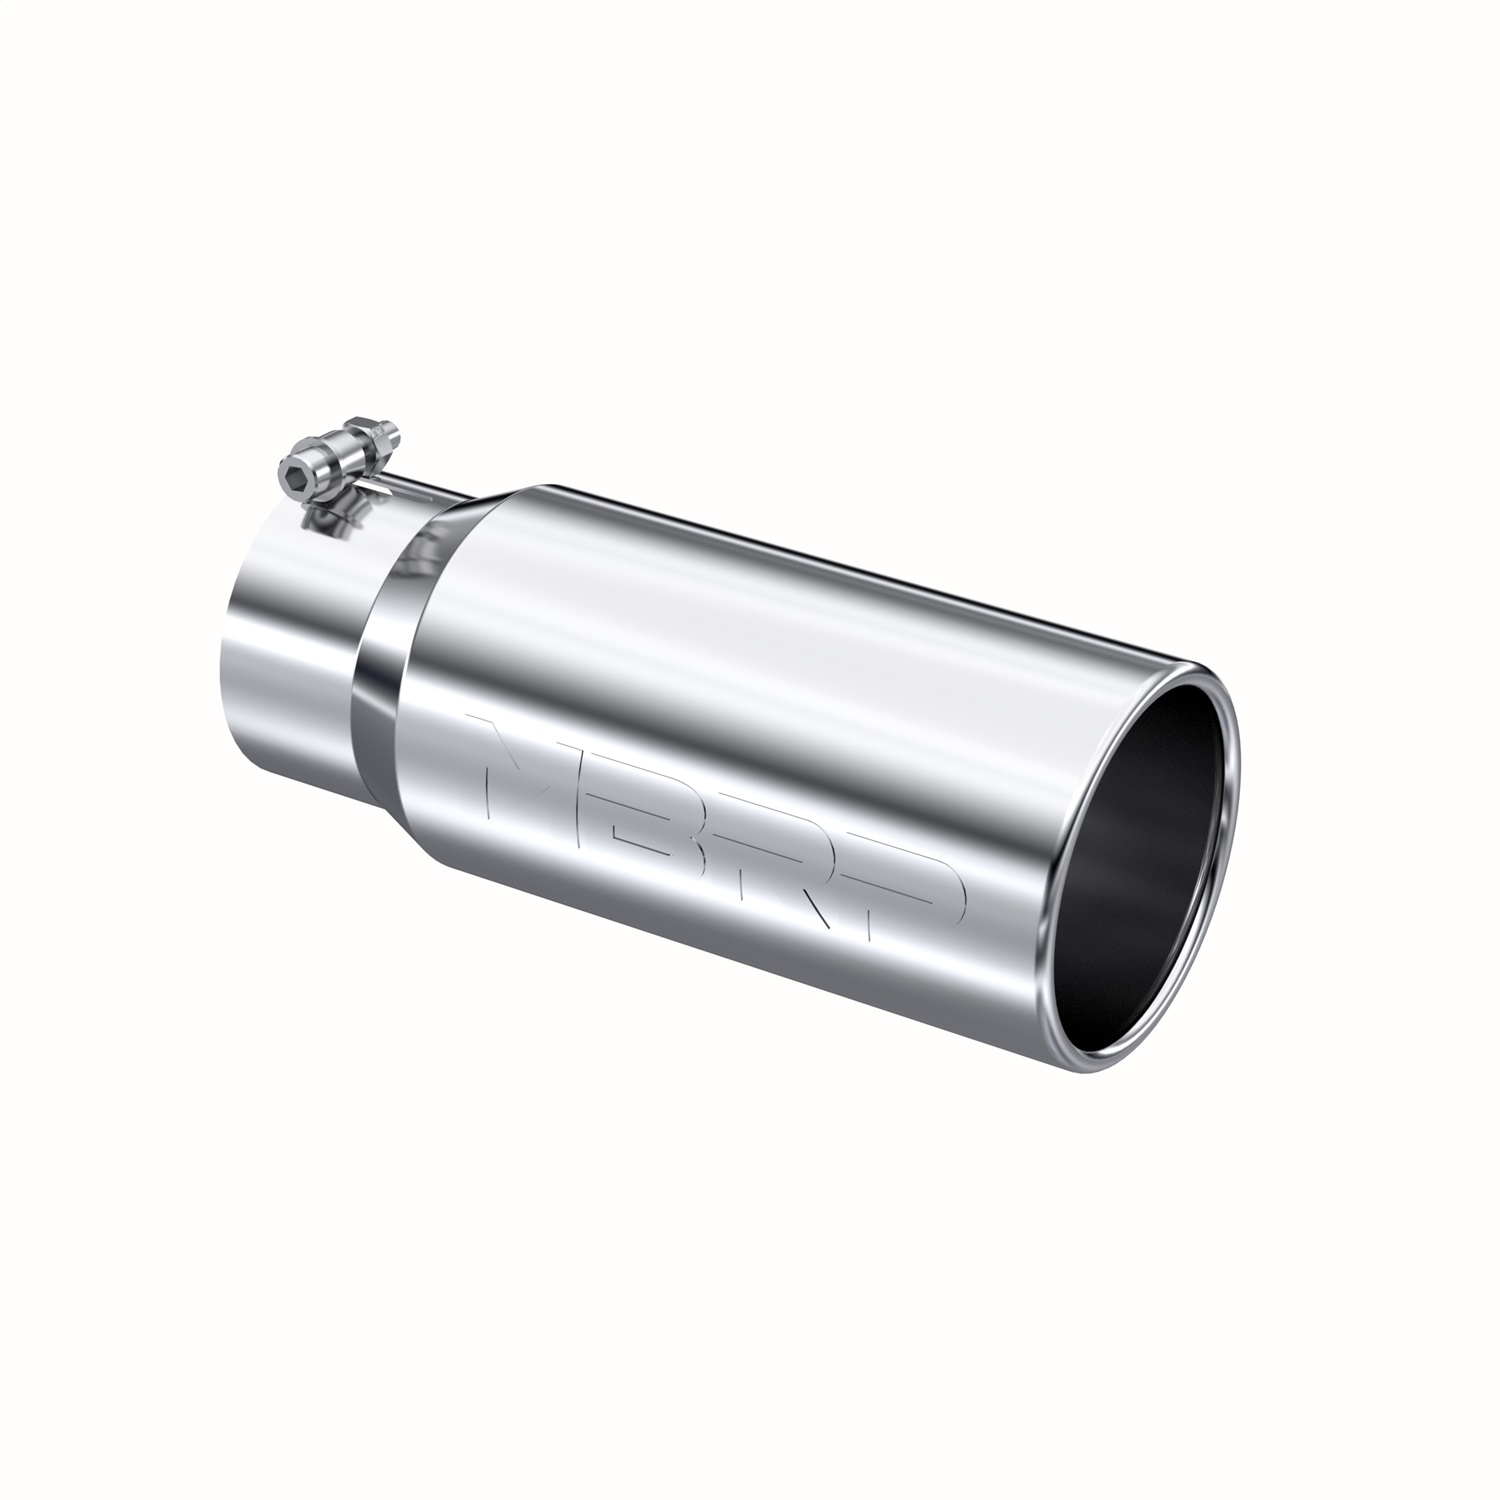 MBRP Exhaust Exhaust Tail Pipe Tip (T5050)